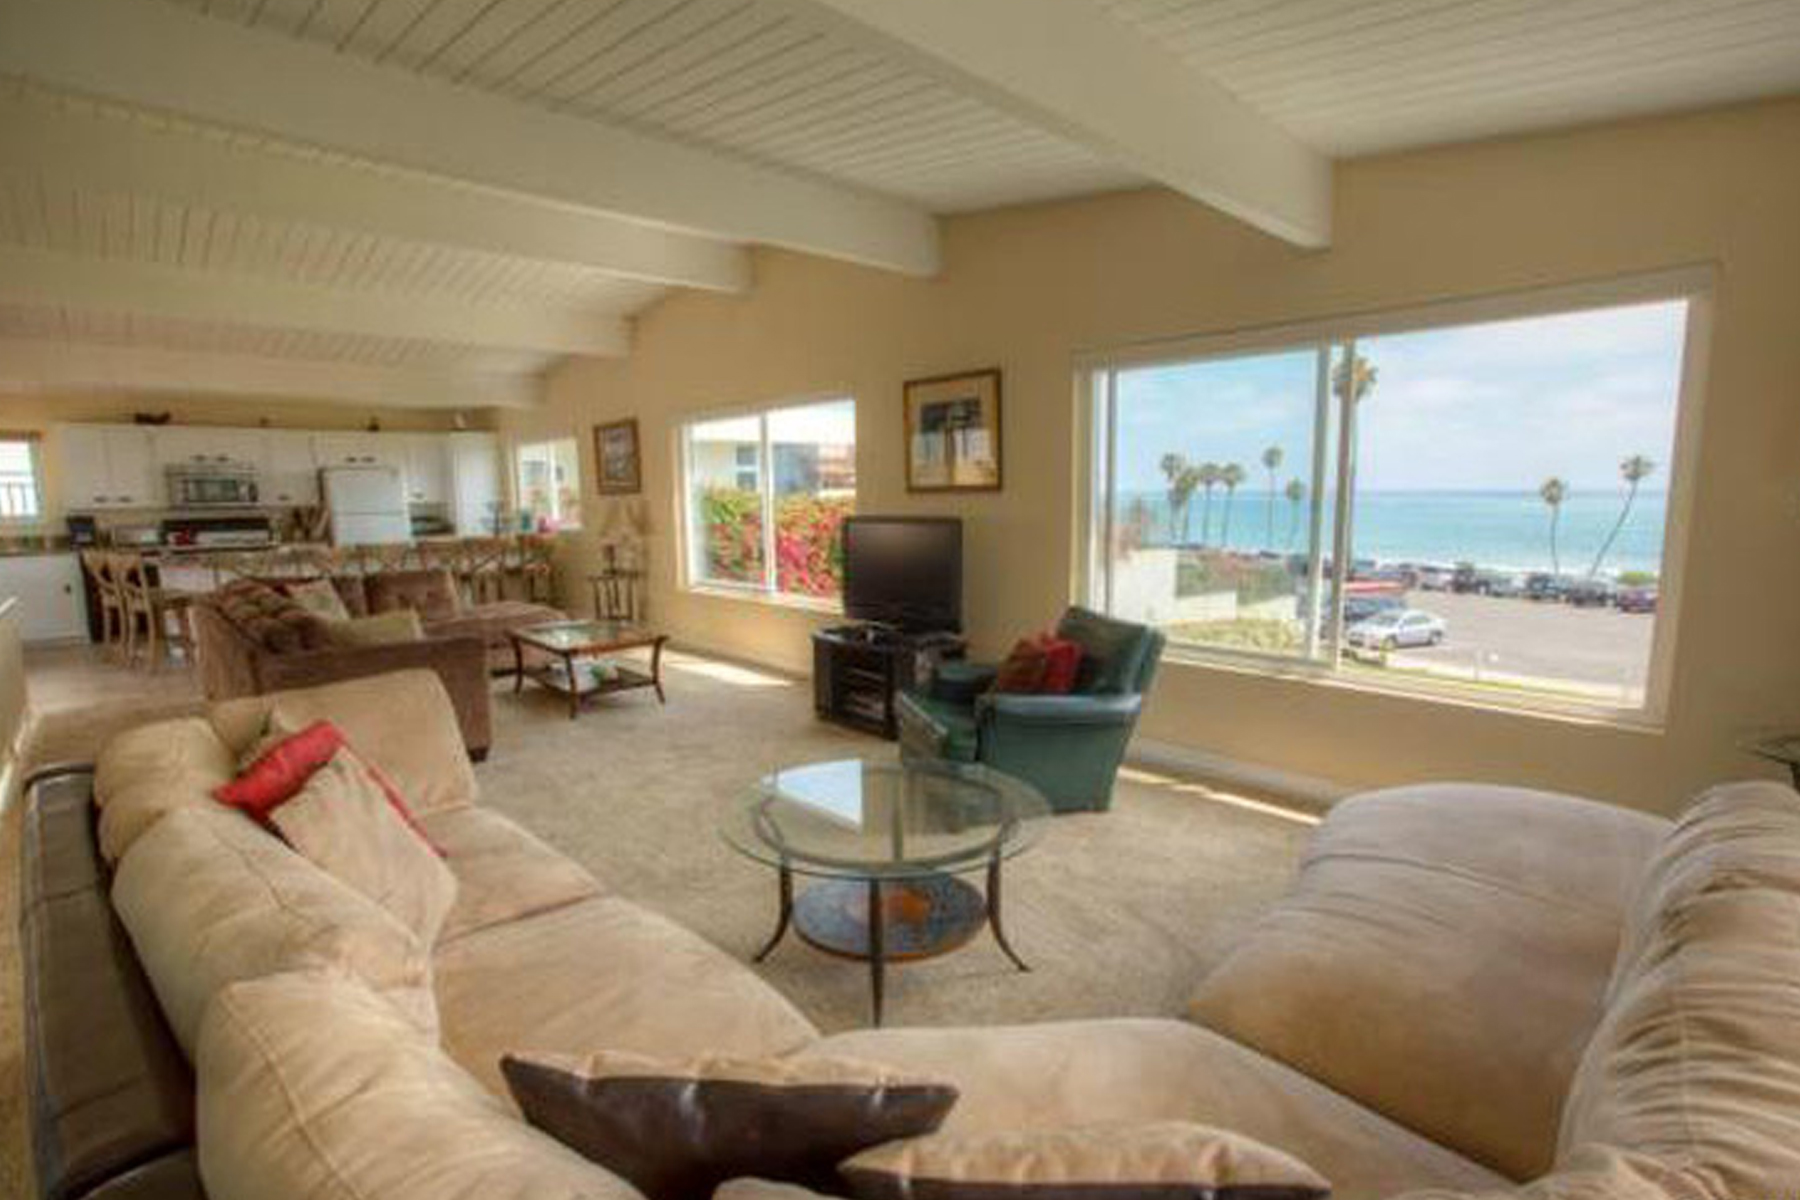 SOLD 7/6/2013    $2,699,000 50 W PASEO CRISTOBAL, SAN CLEMENTE 92672